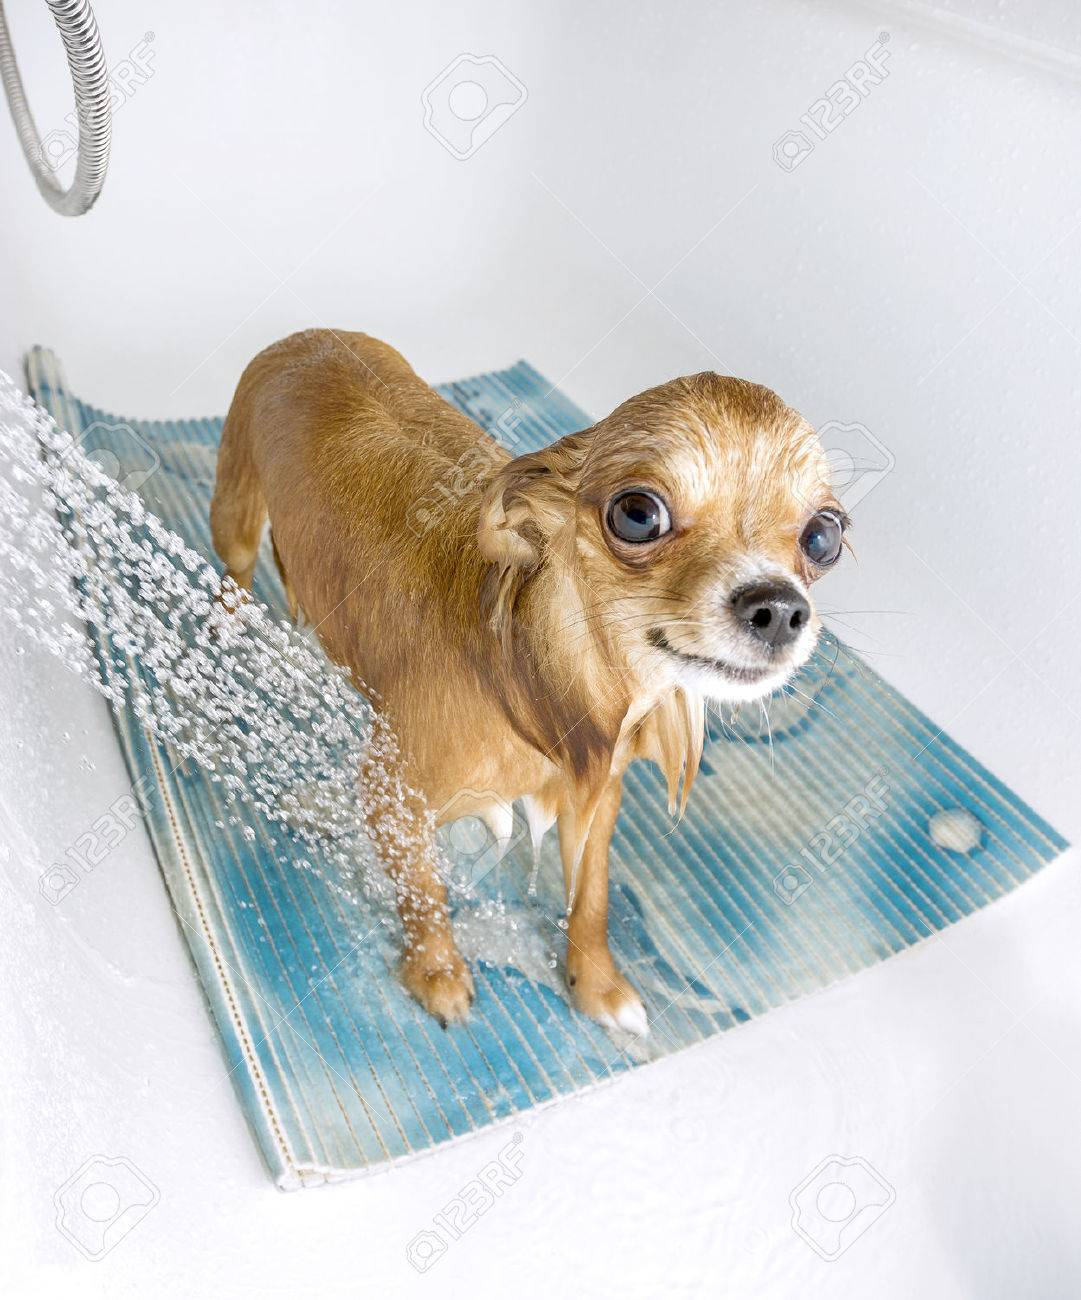 chihuahua dog getting pleasure from shower in bath stock photo stock photo chihuahua dog getting pleasure from shower in bath